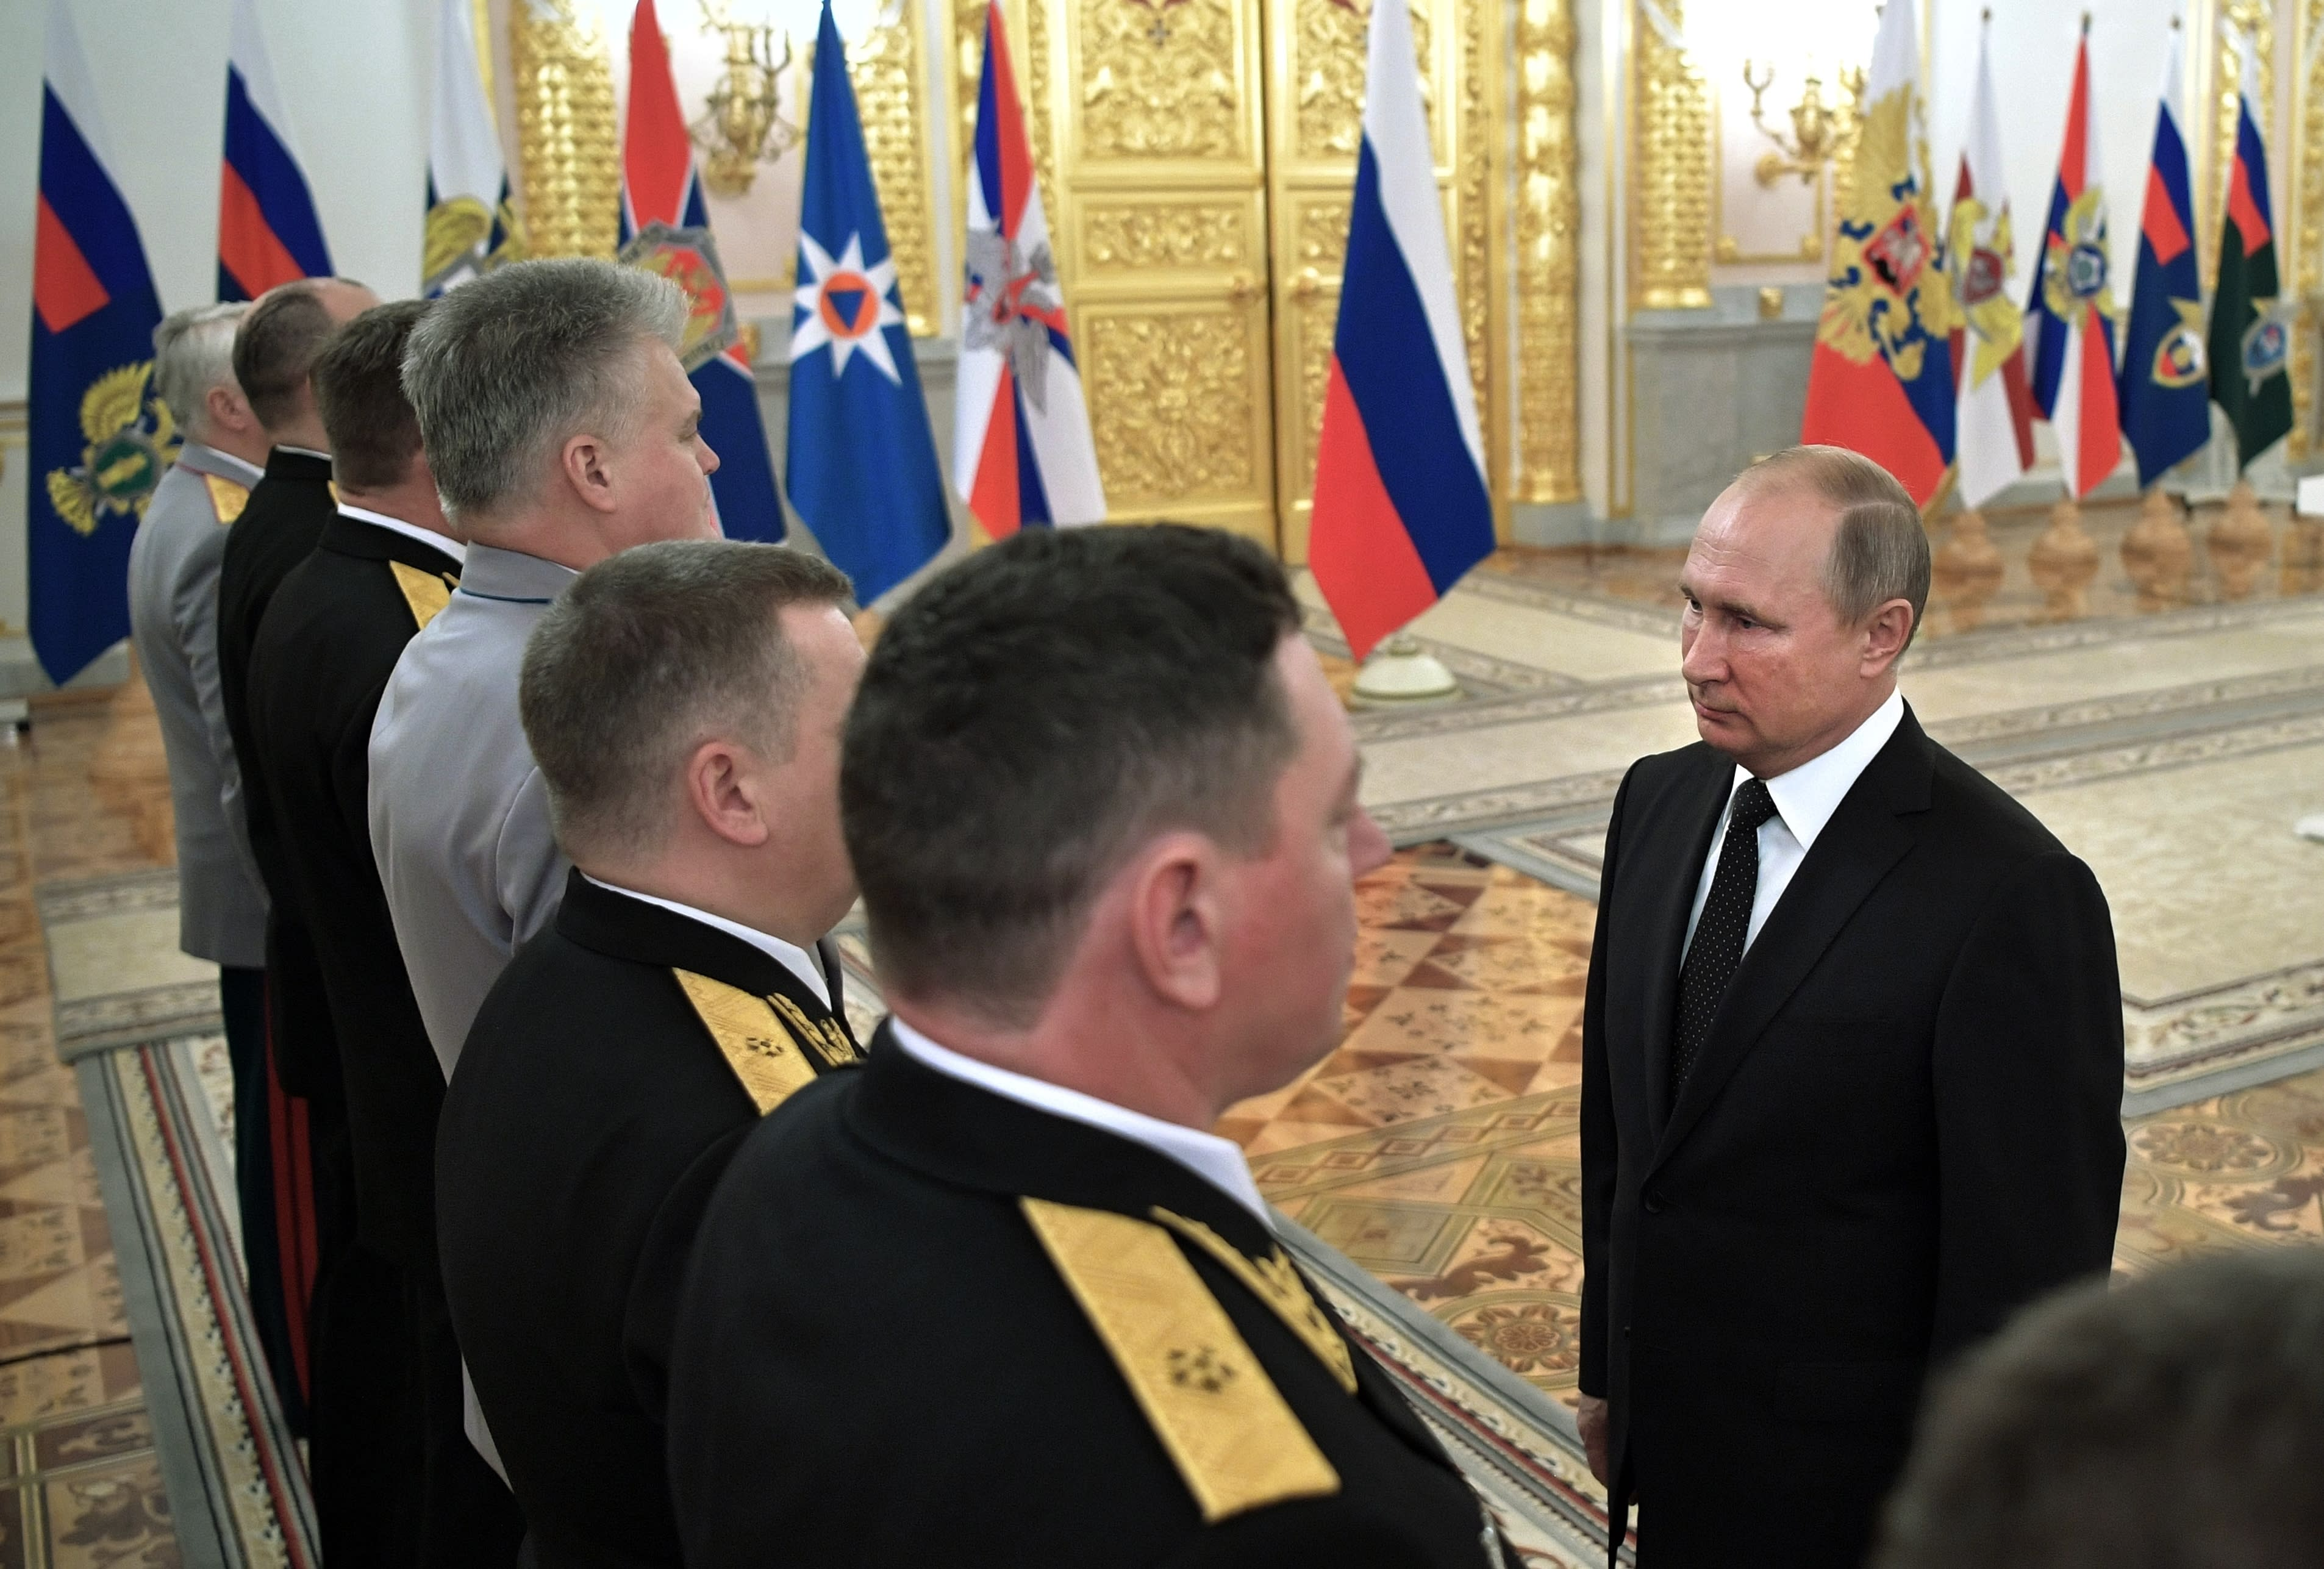 Russian President Vladimir Putin, right, greets top military officers and law enforcement officials in the Kremlin in Moscow, Russia, Thursday, Oct. 25, 2018. Putin said that Russia has adhered to its obligations in the arms control sphere, but noted that Russian arsenals will be modernized to ensure protection from any potential threats. (Alexei Nikolsky, Sputnik, Kremlin Pool Photo via AP)